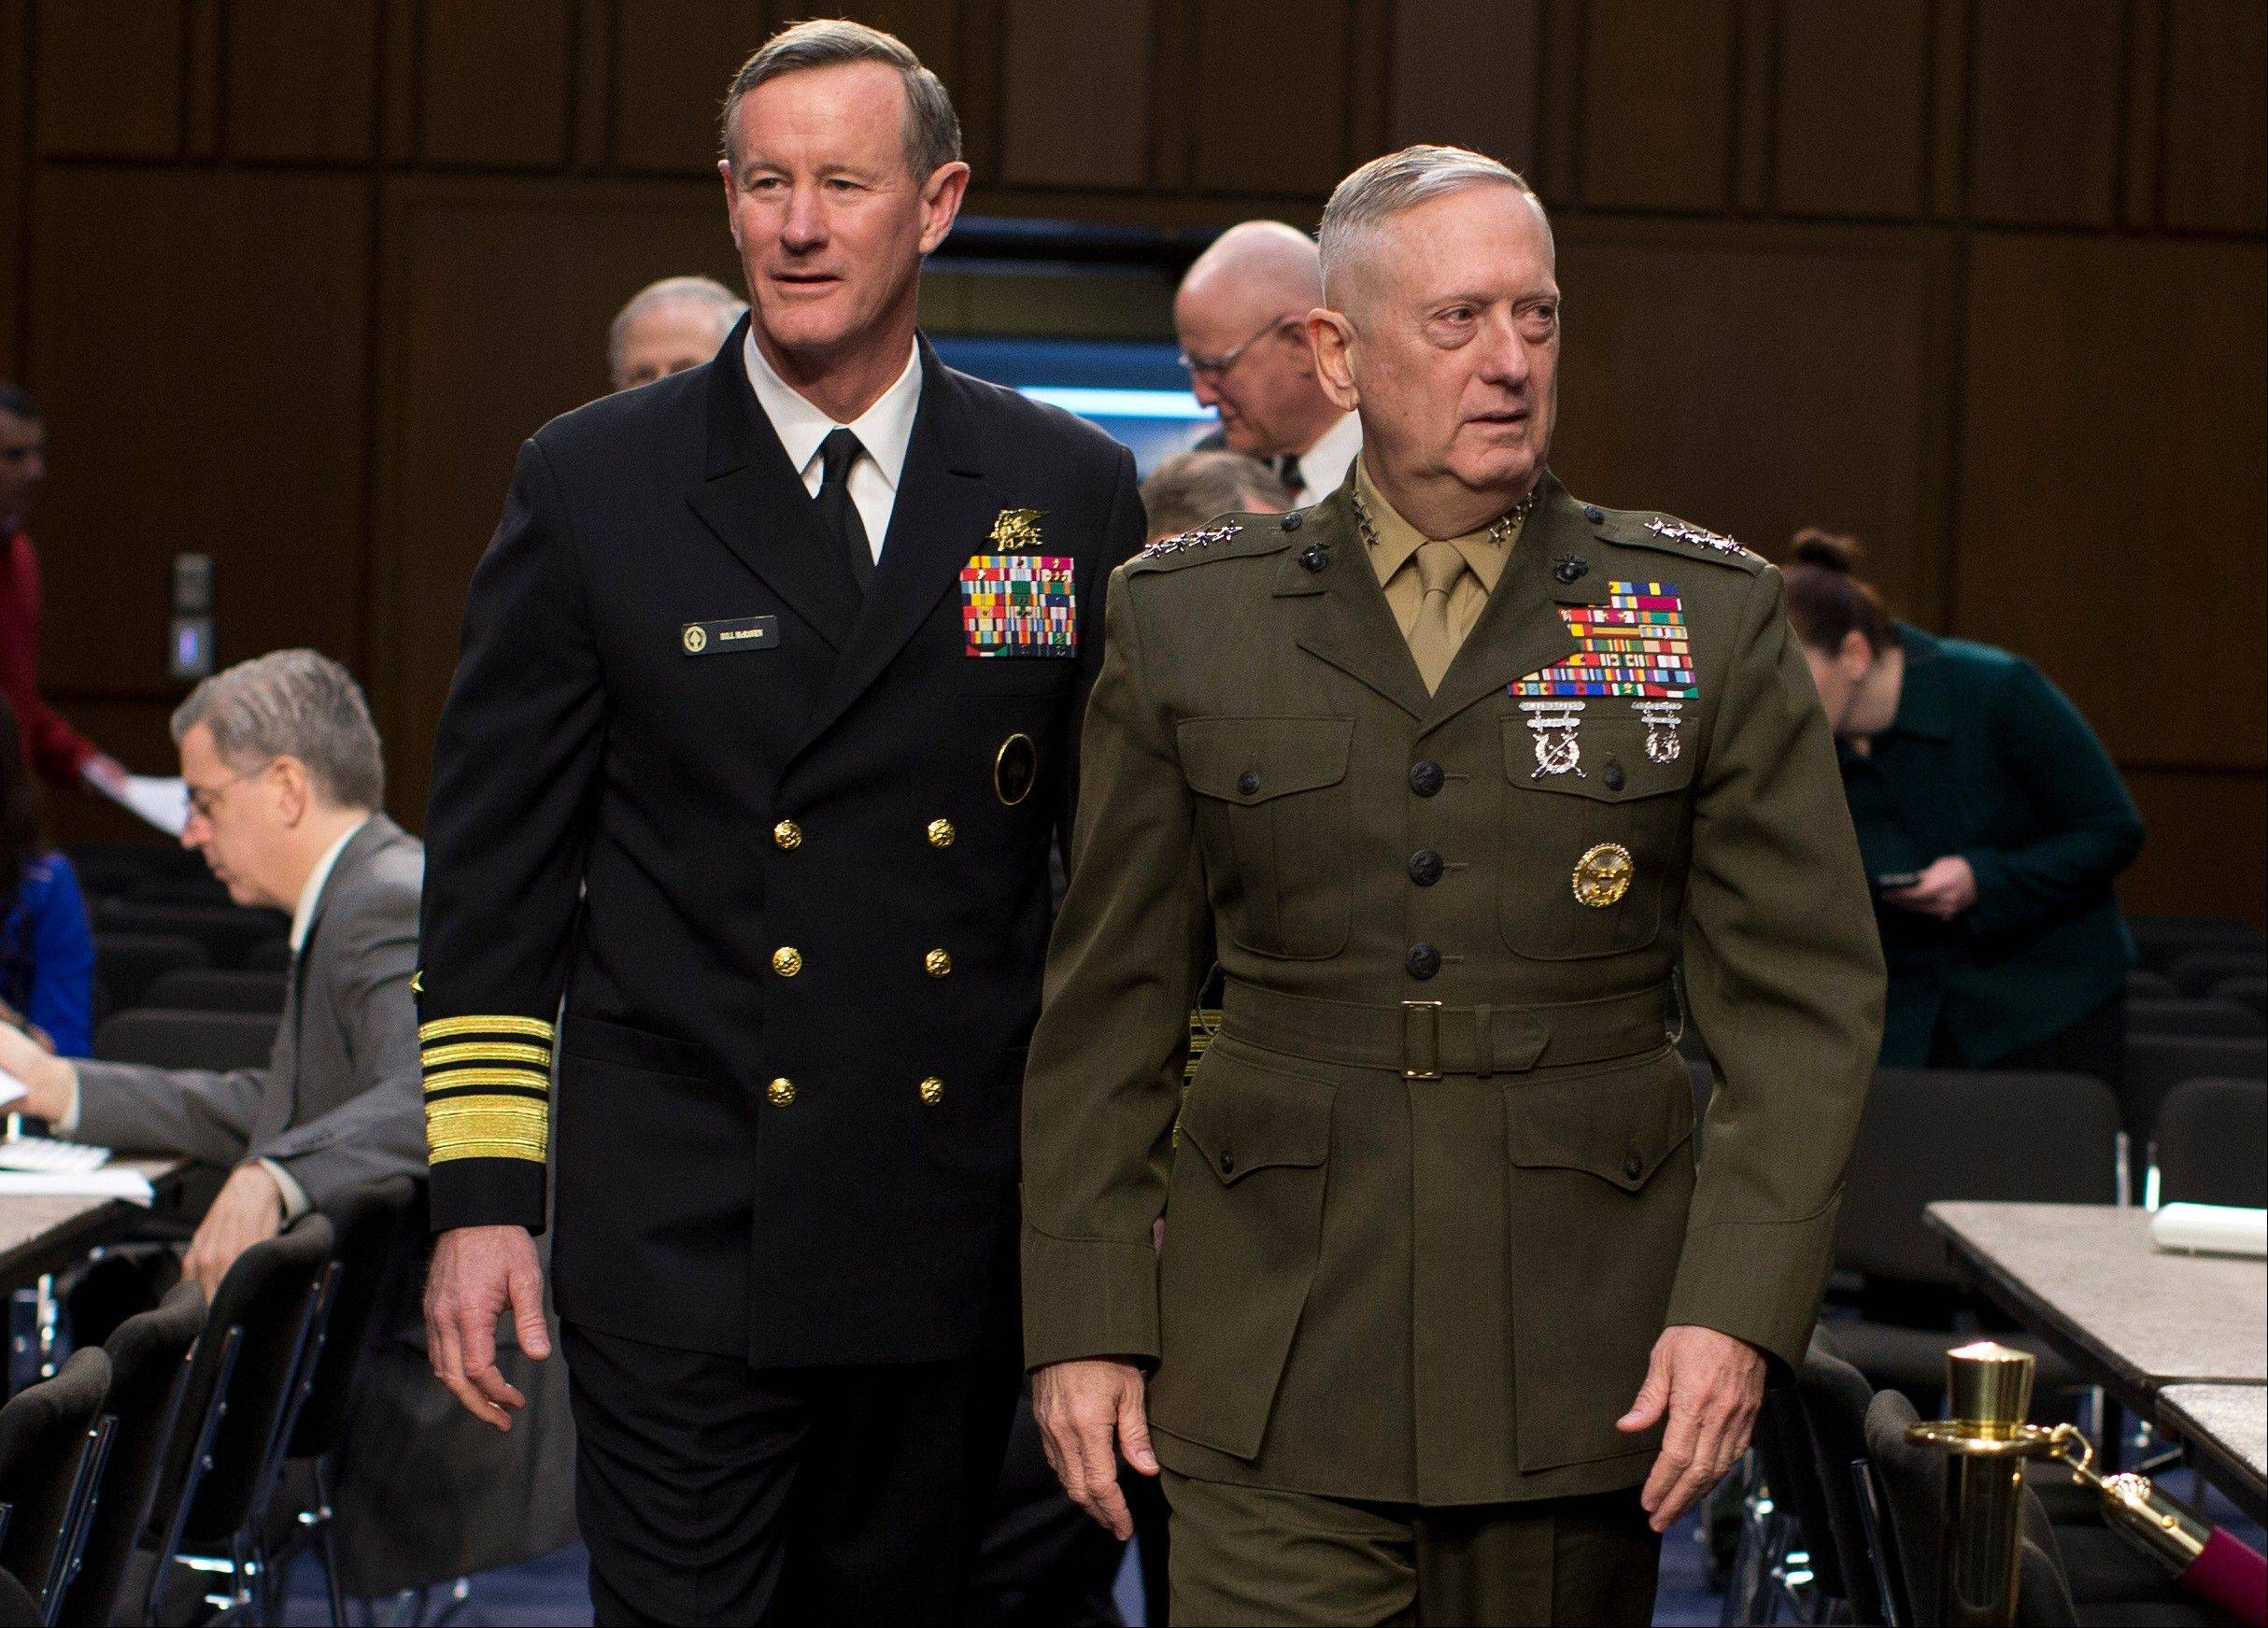 Marine Gen. James Mattis, commander, U.S. Central Command, right, followed by Navy Adm. William McRaven, commander, U.S. Special Operations Command, arrive on Capitol Hill Tuesday to testifie before a Senate committee.